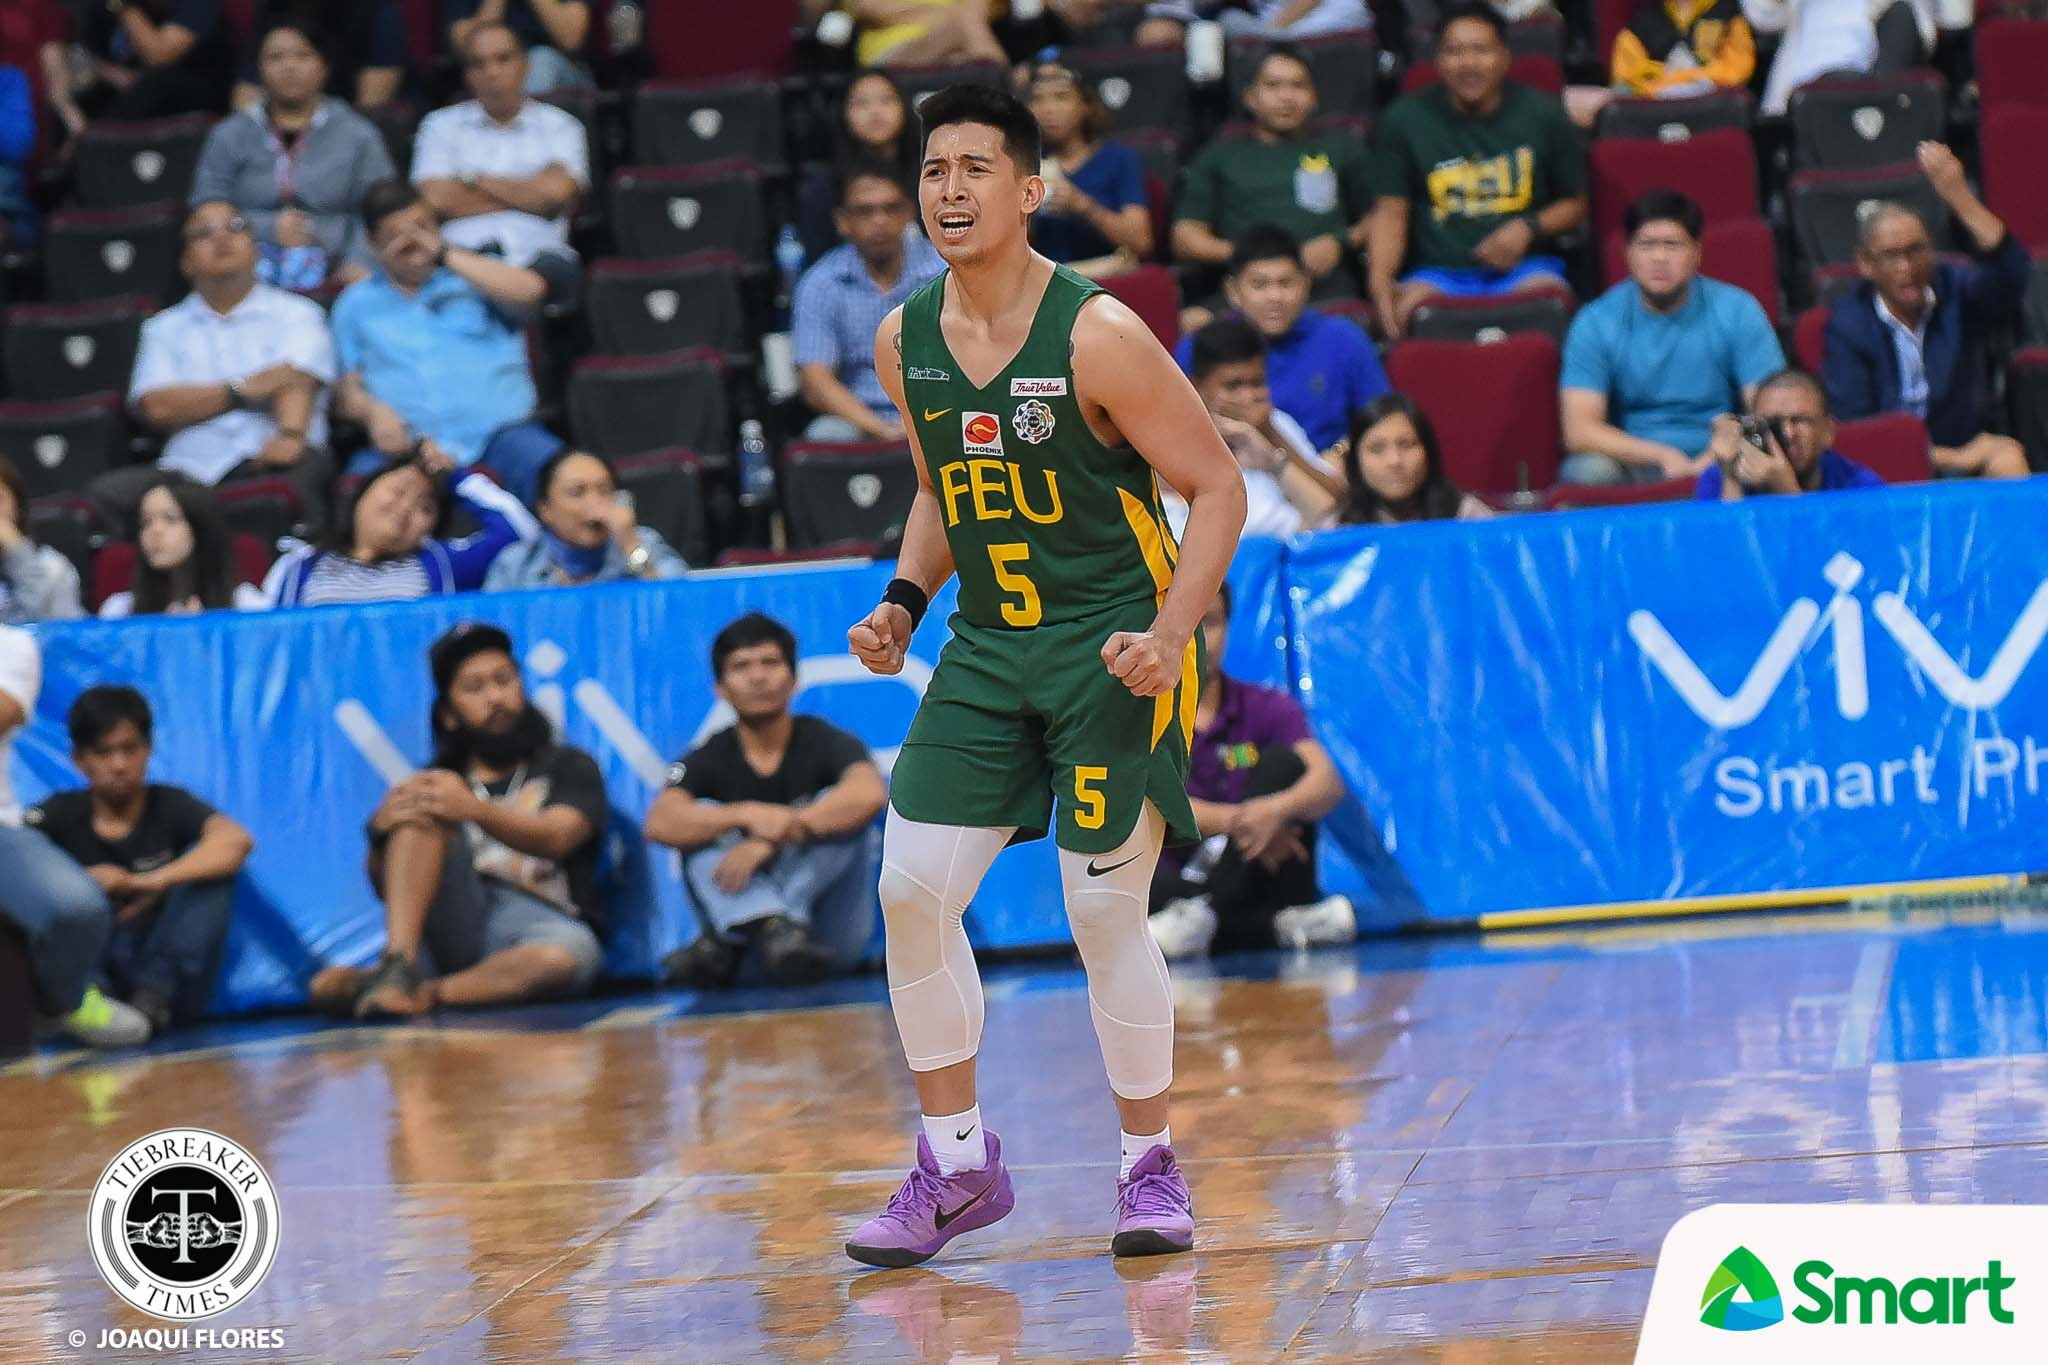 Tiebreaker Times Senior Axel Inigo gives way to rookie L-Jay Gonzales Basketball FEU News UAAP  UAAP Season 81 Men's Basketball UAAP Season 81 Olsen Racela FEU Men's Basketball Axel Inigo